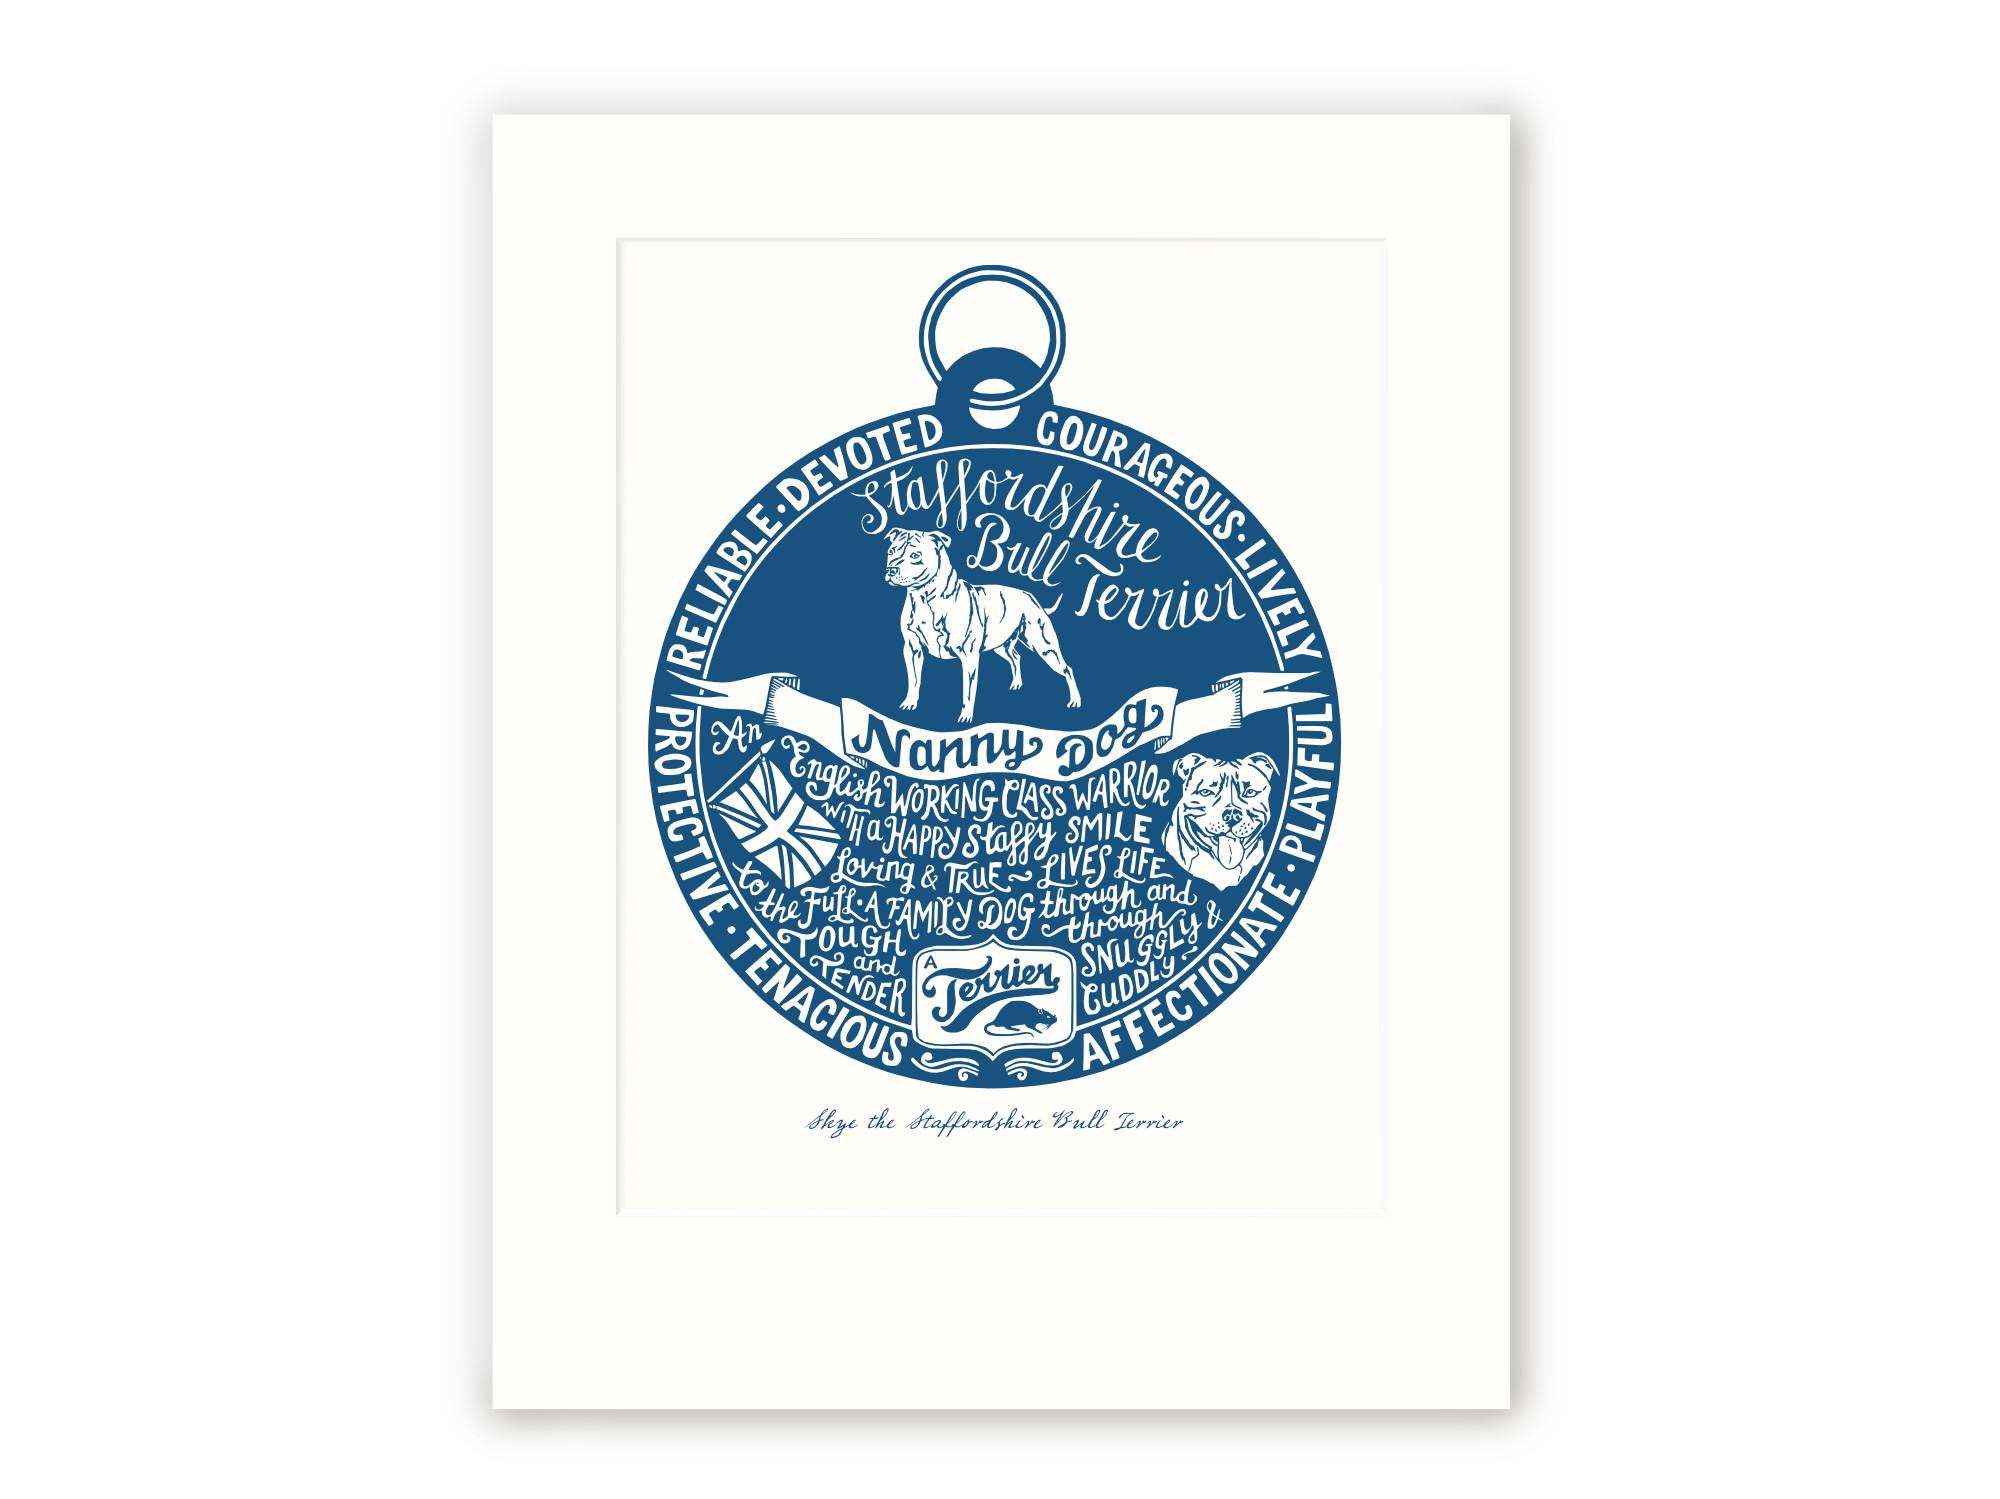 Staffordshire bull terrier  - Personalised Prints for Dog Lovers by The Enlightened Hound